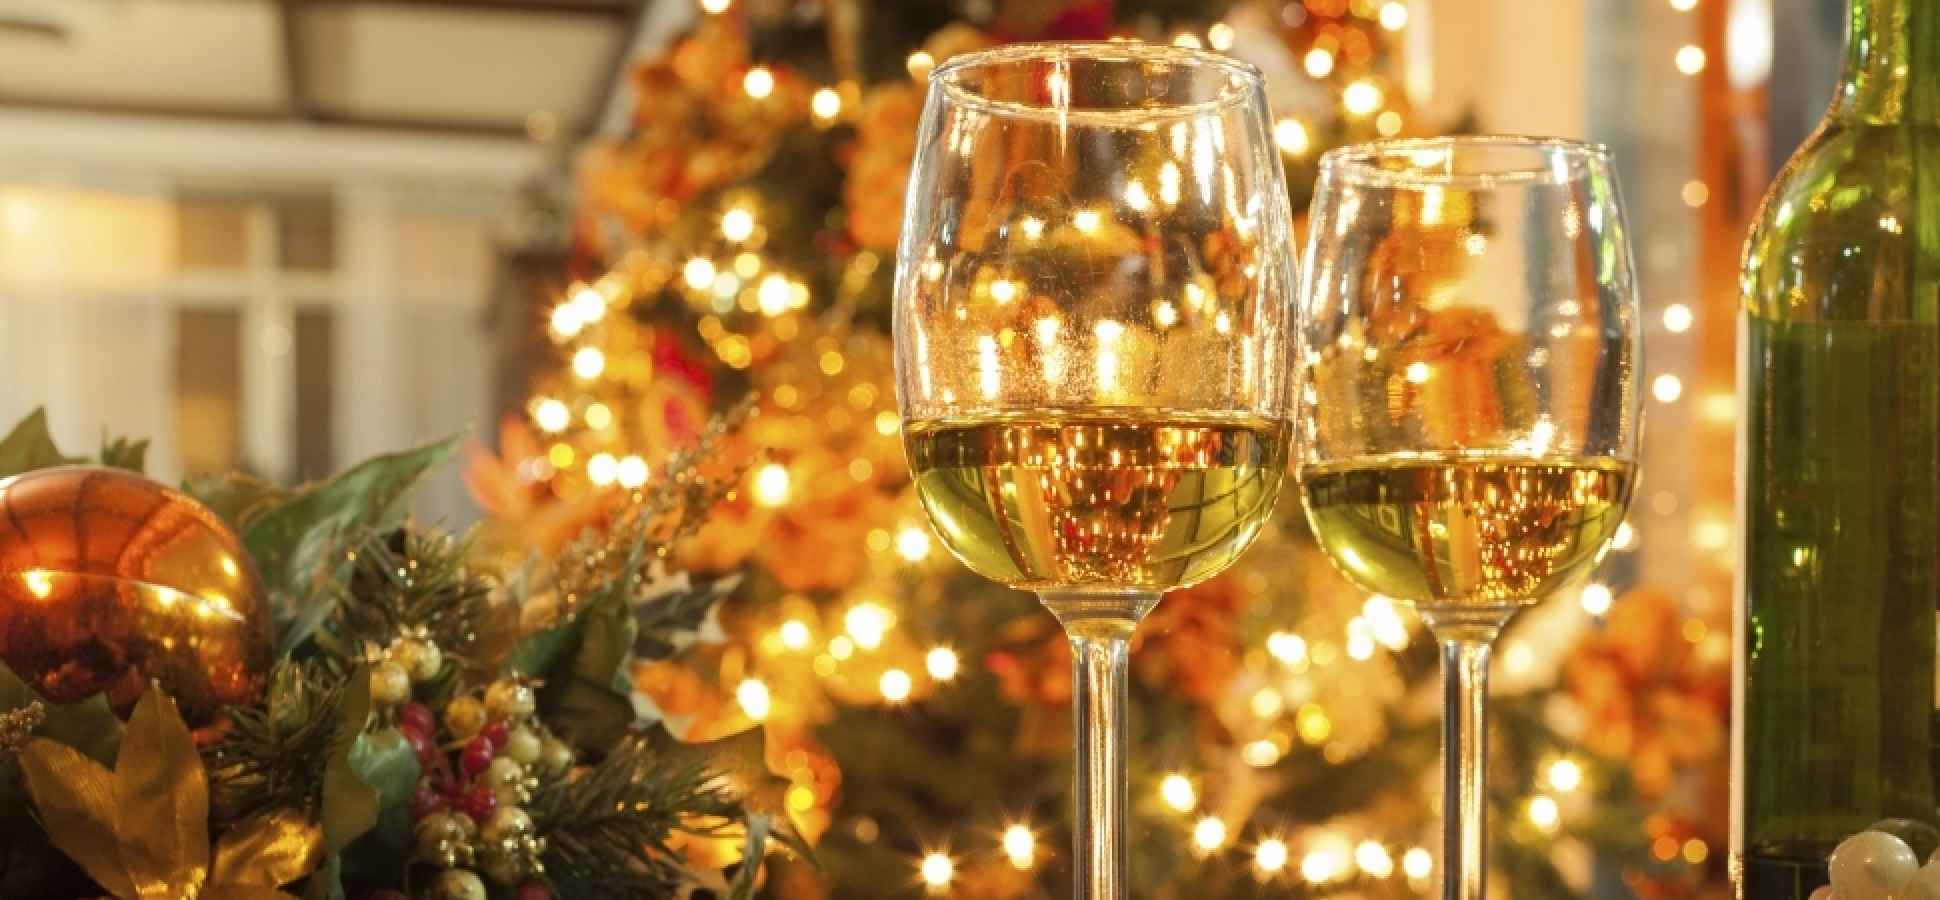 Small Company Christmas Party Ideas Part - 49: Office Holiday Parties Your Employees Want To Attend | Inc.com